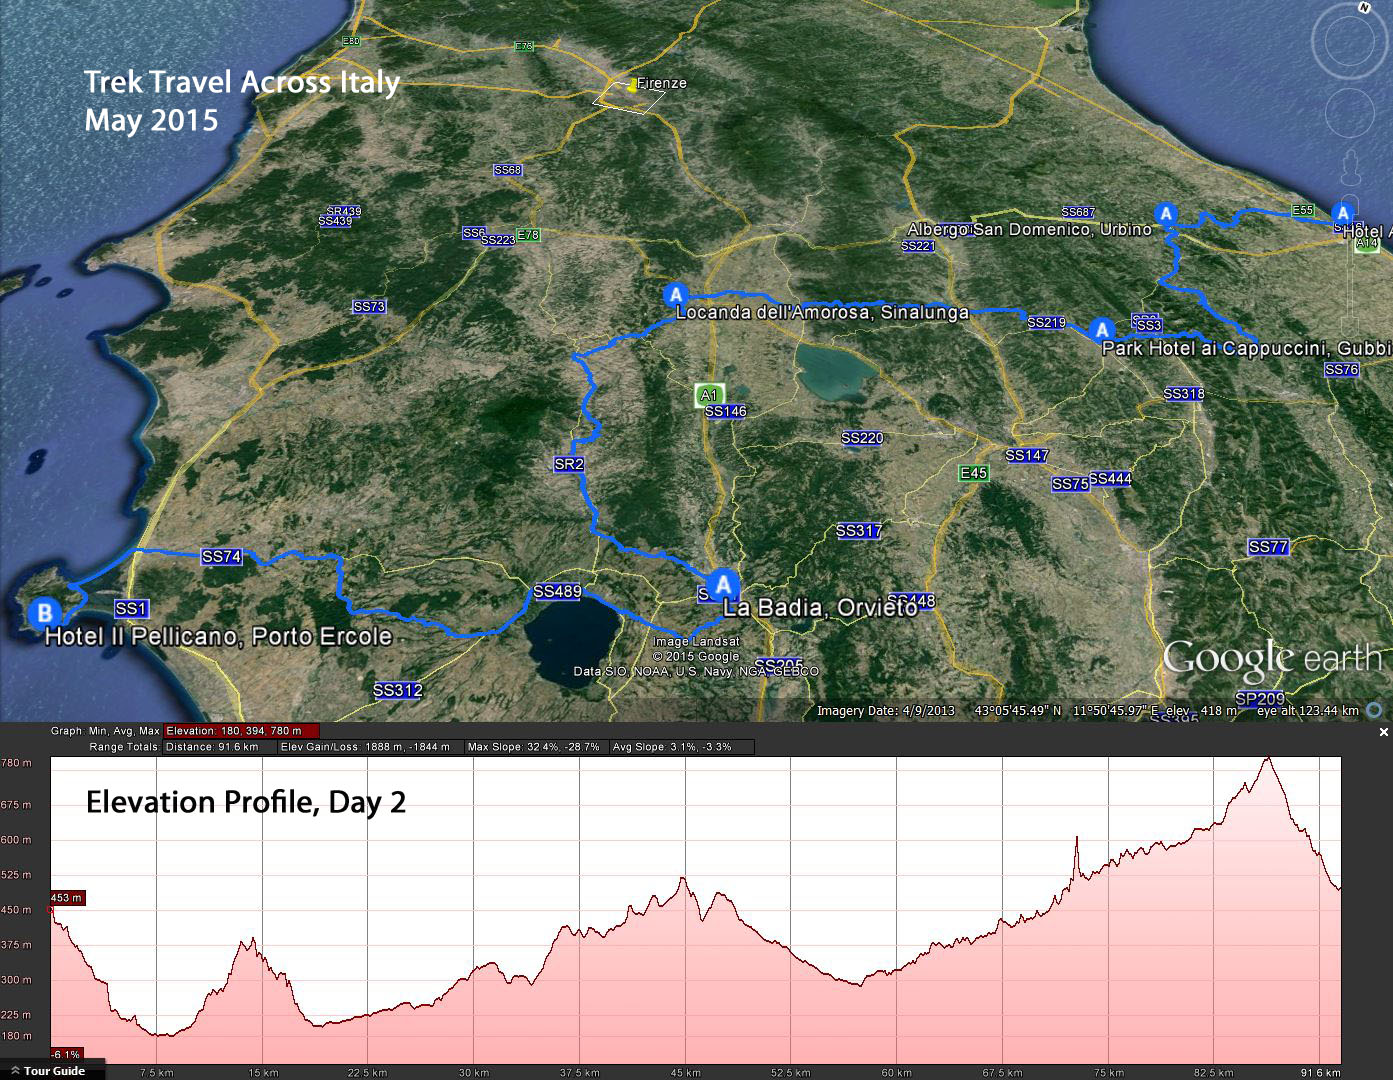 Click image for larger version  Name:Trek Cross Italy Days 1-5 Text.jpg Views:41 Size:430.2 KB ID:242024